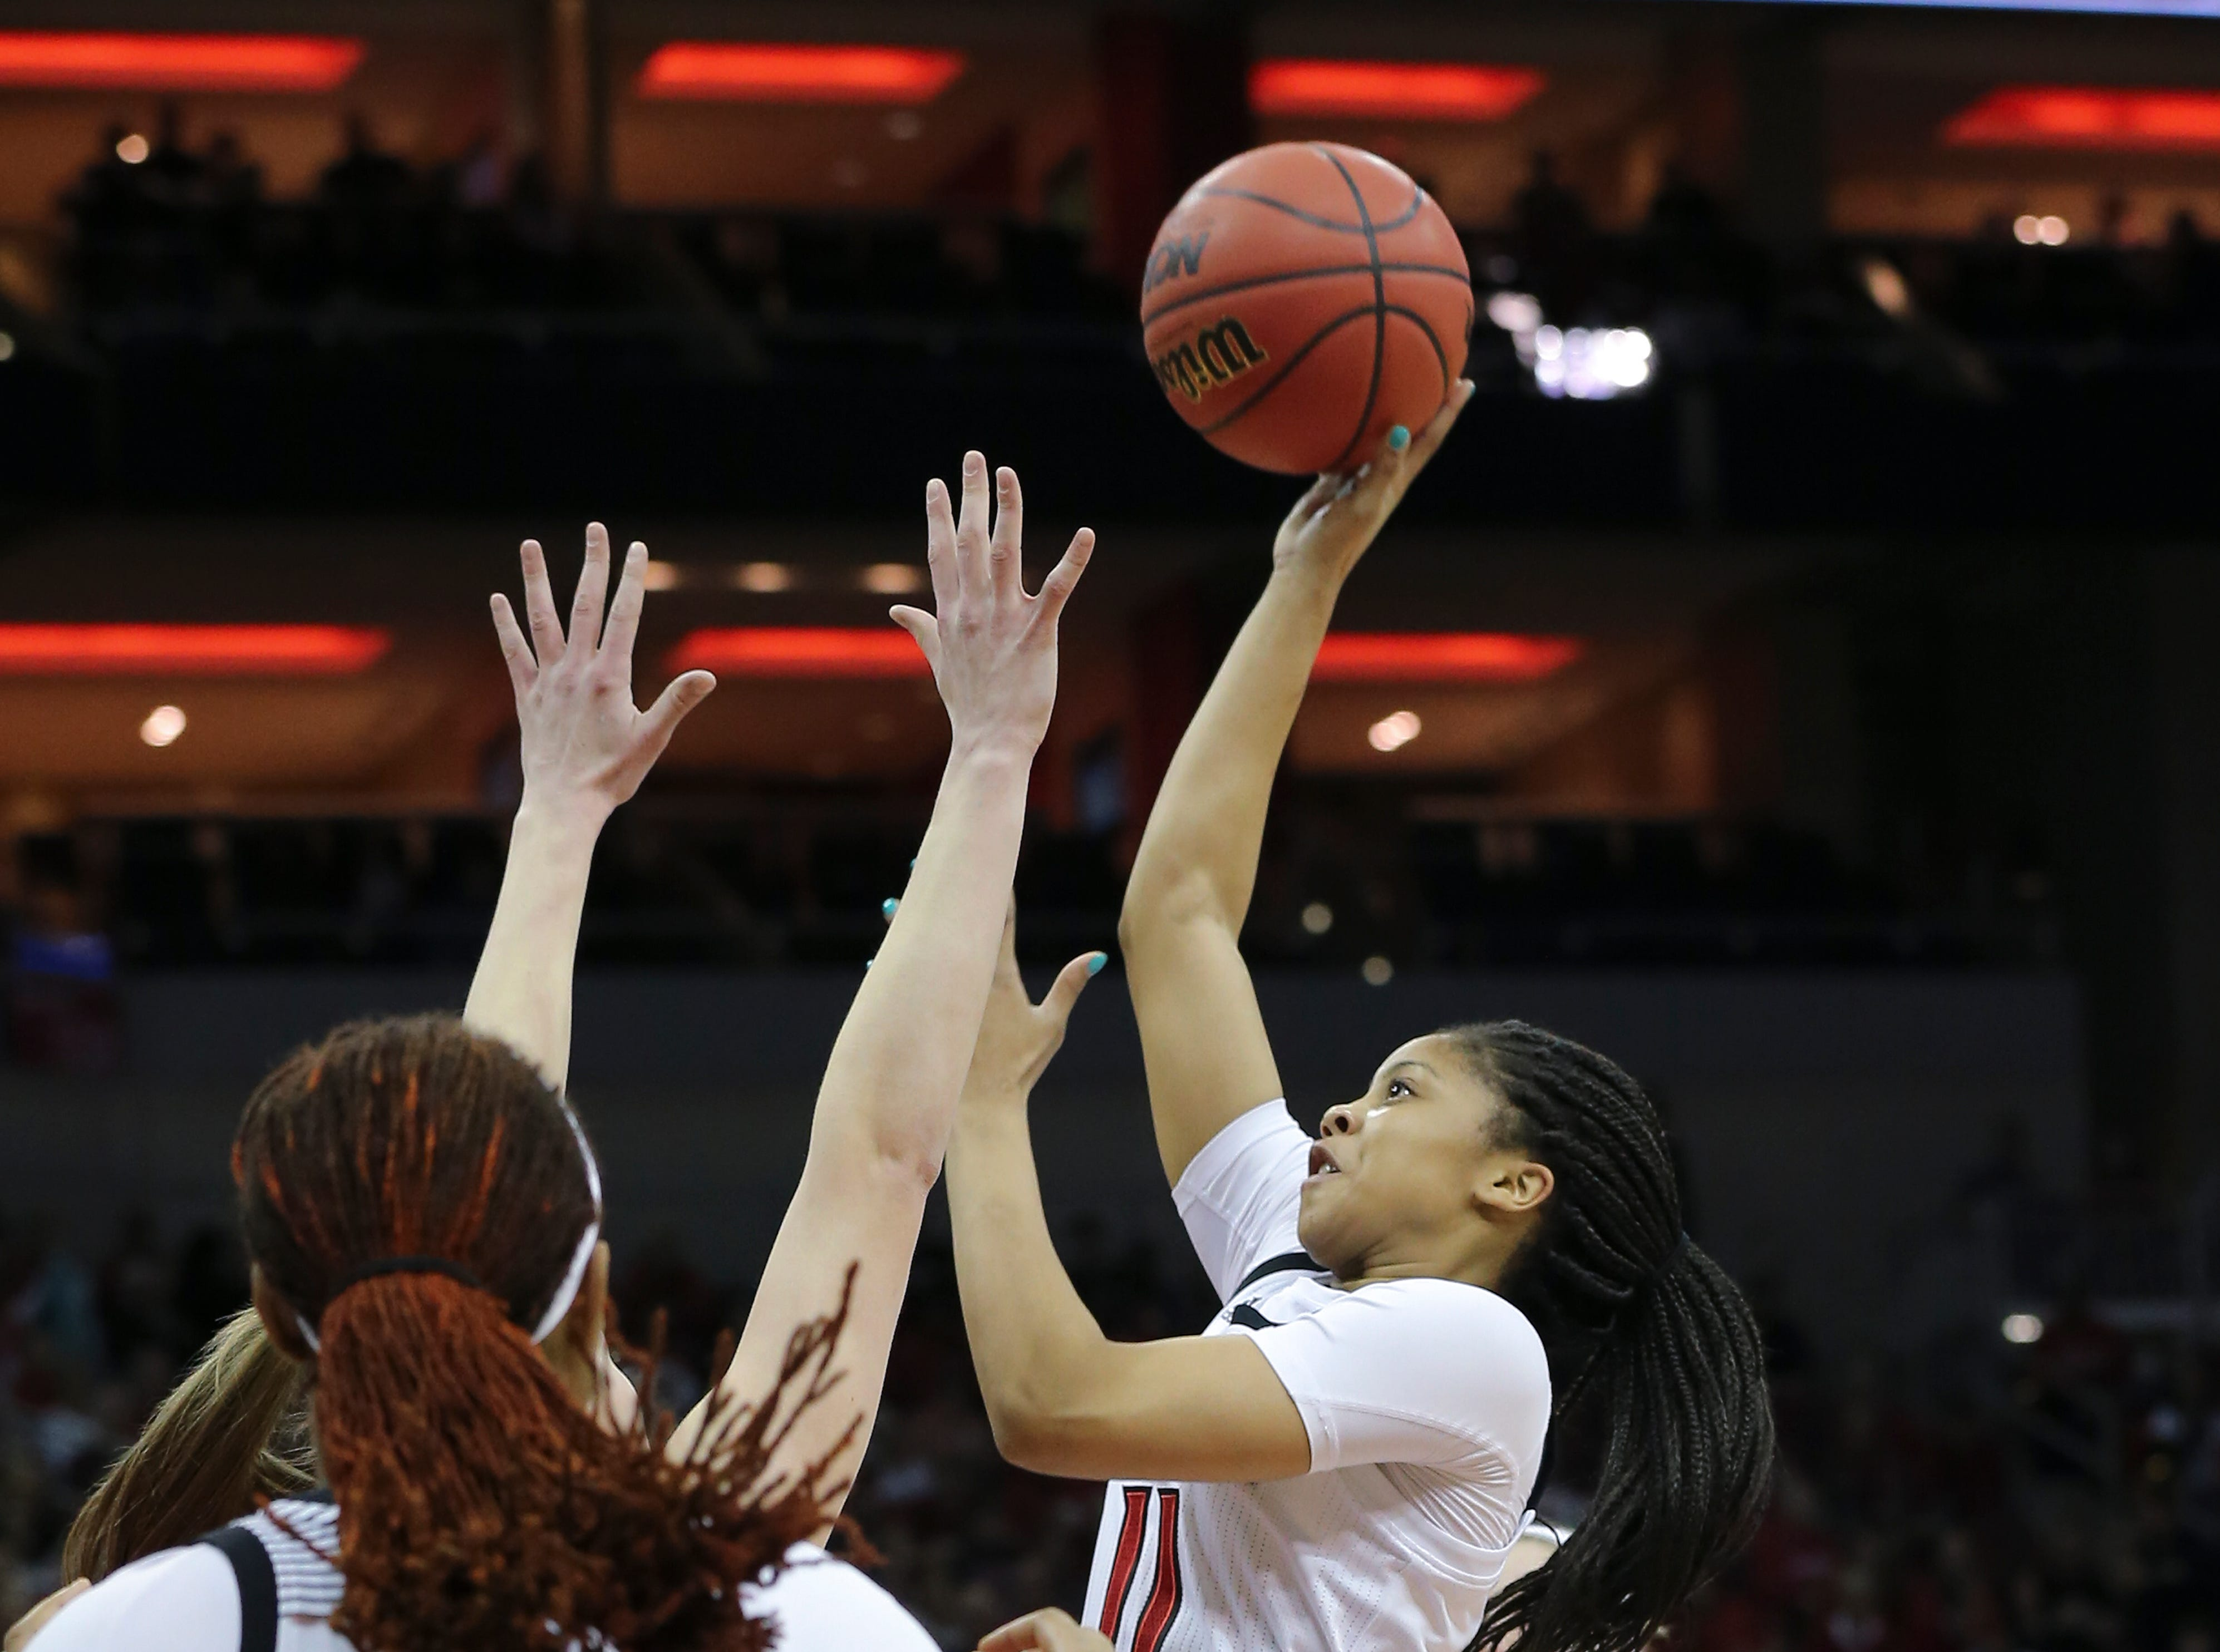 U of L's Arica Carter (11) shoots against Michigan in the second round of their NCAA Tournament game at the Yum Center.  Mar. 24, 2019